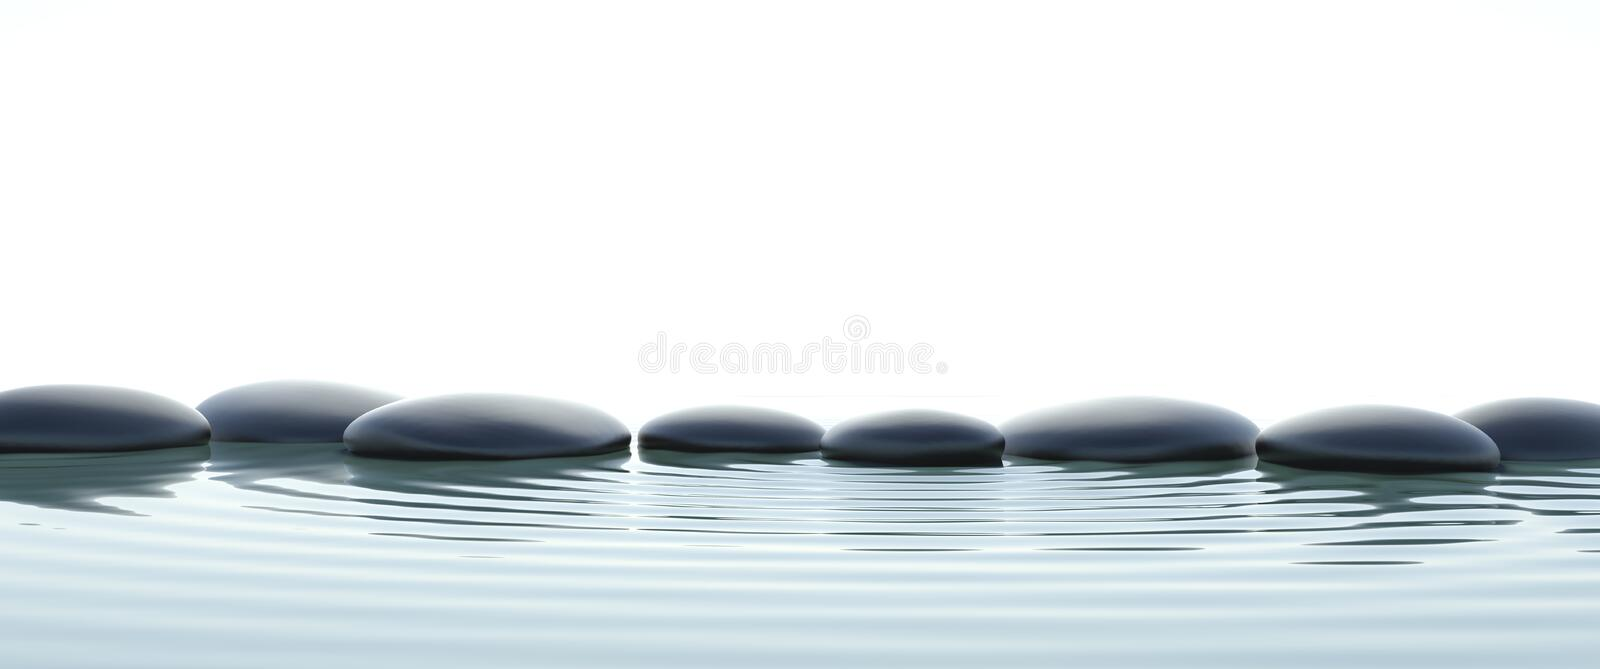 Zen stones in water on widescreen vector illustration